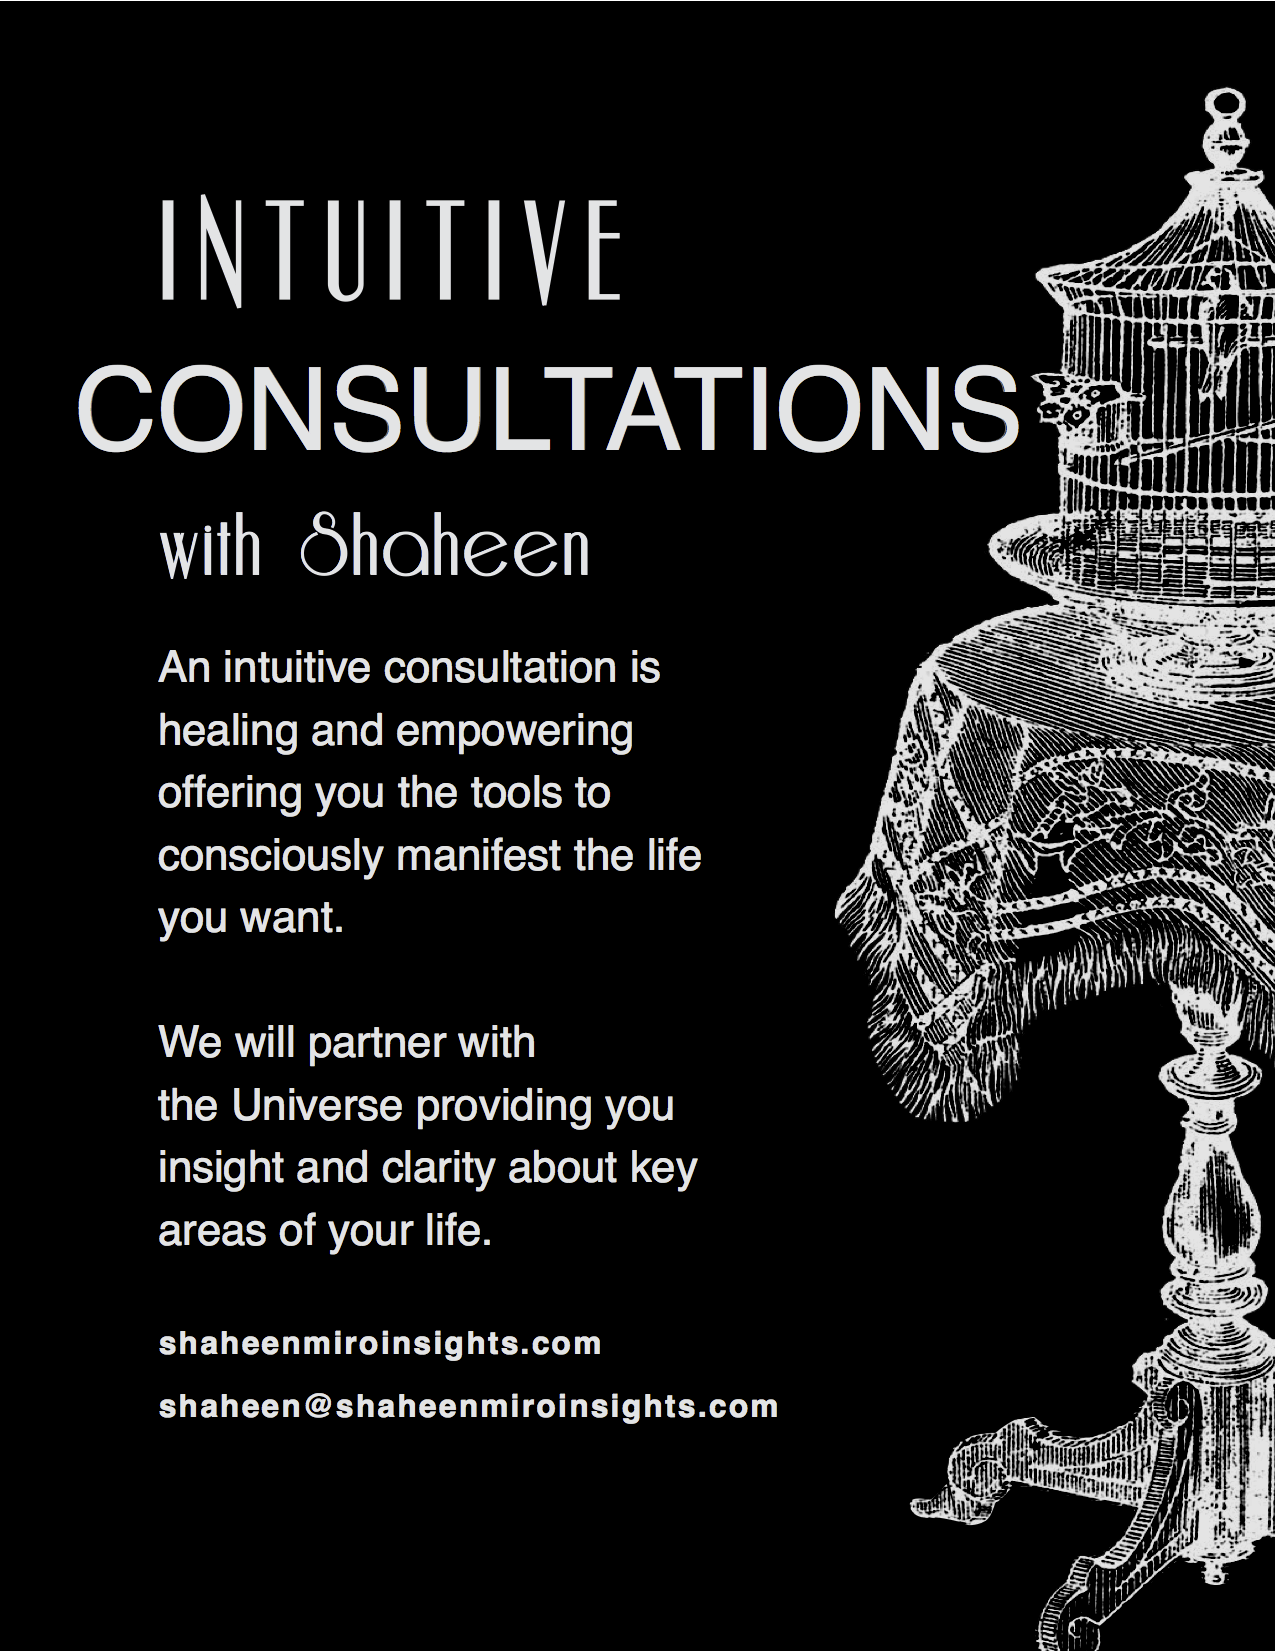 Intuitive Consultations